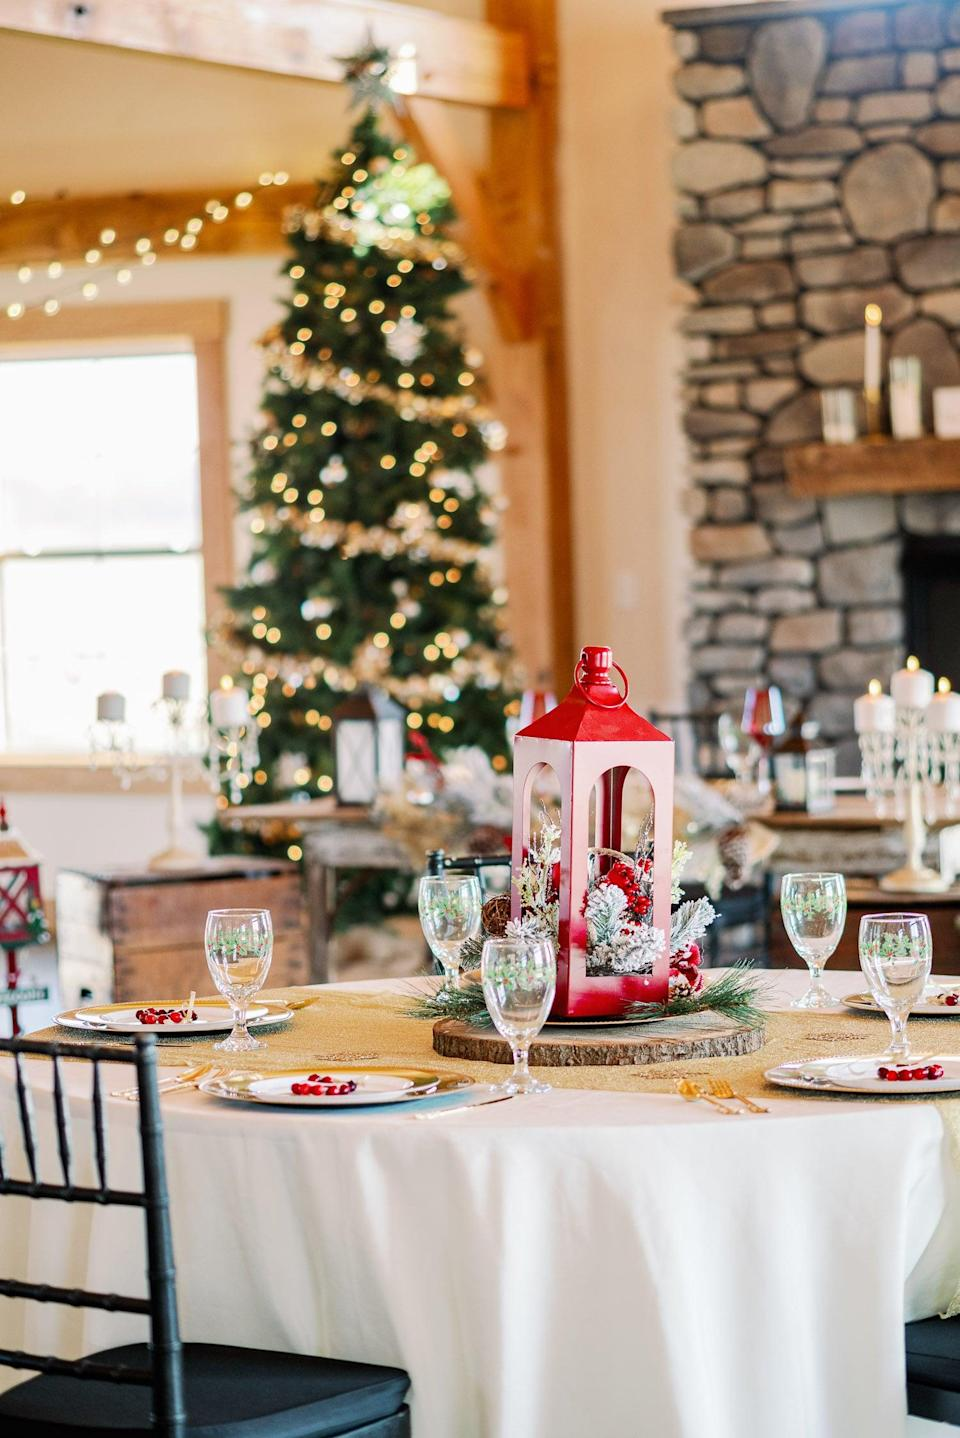 <p>Matching the party to the season is charming and cute no matter what month of the year it is. If your bride loves a certain holiday, theme her shower after it, and feel free to get creative.</p>